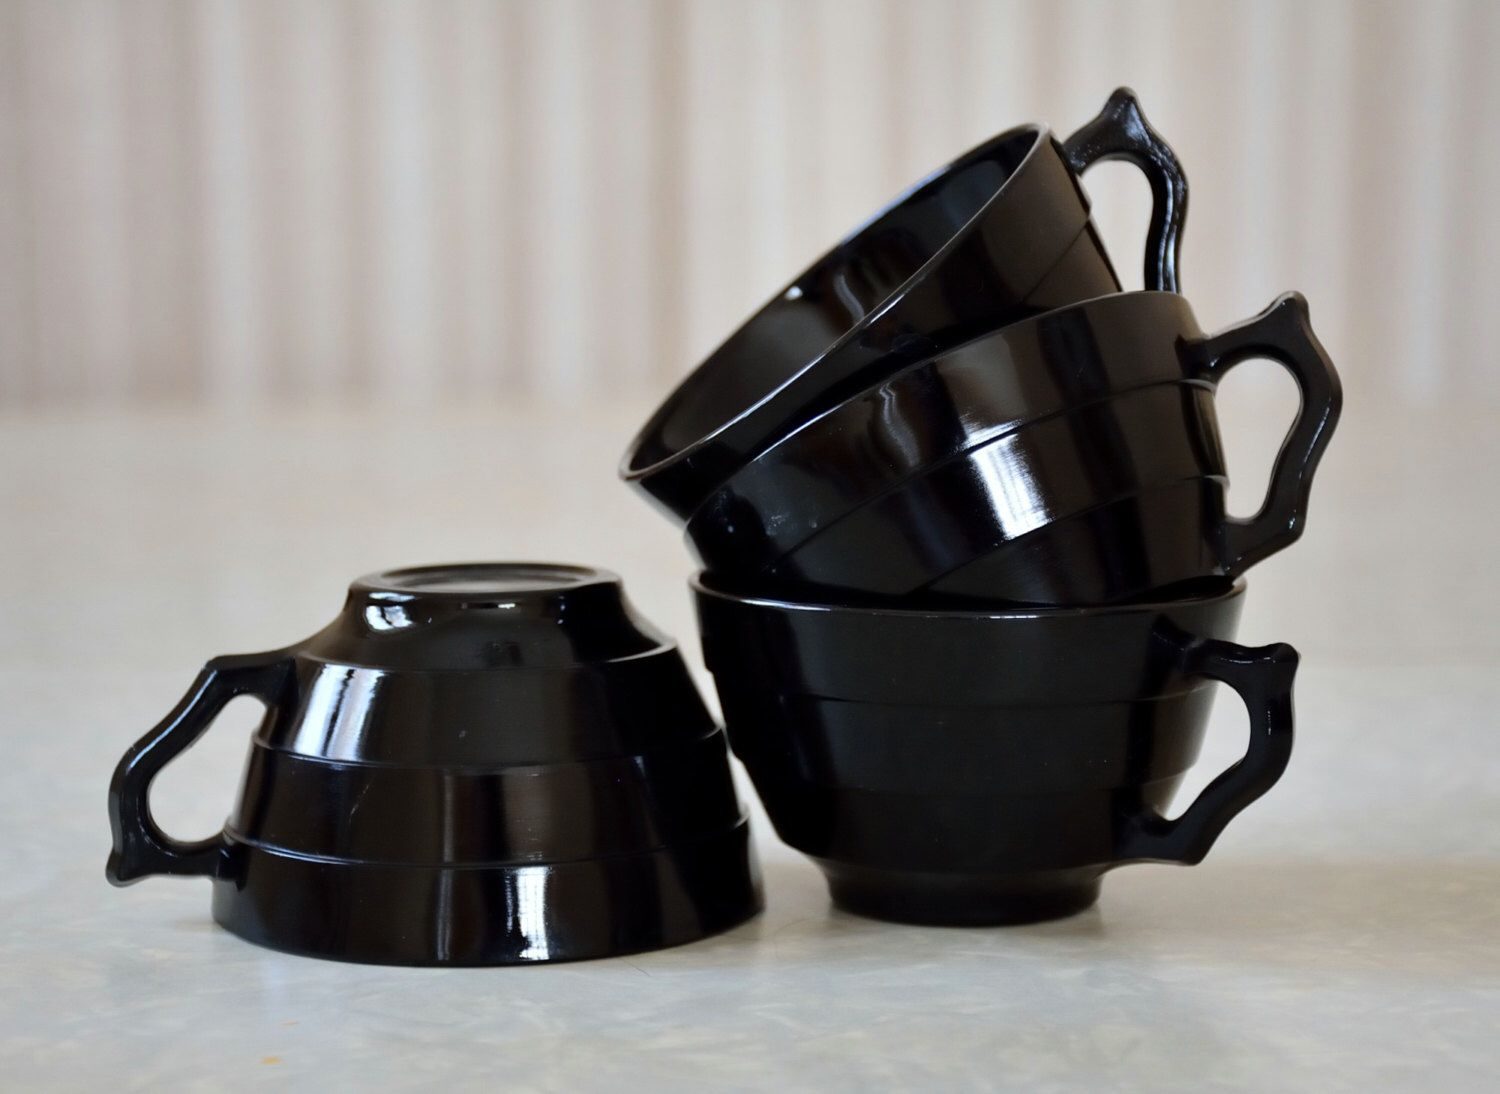 Set of four black Moderntone cups by Hazel Atlas, hard to find in black, Mid Century Glassware, Depression Glass by TheLadenBranch on Etsy https://www.etsy.com/listing/262719982/set-of-four-black-moderntone-cups-by